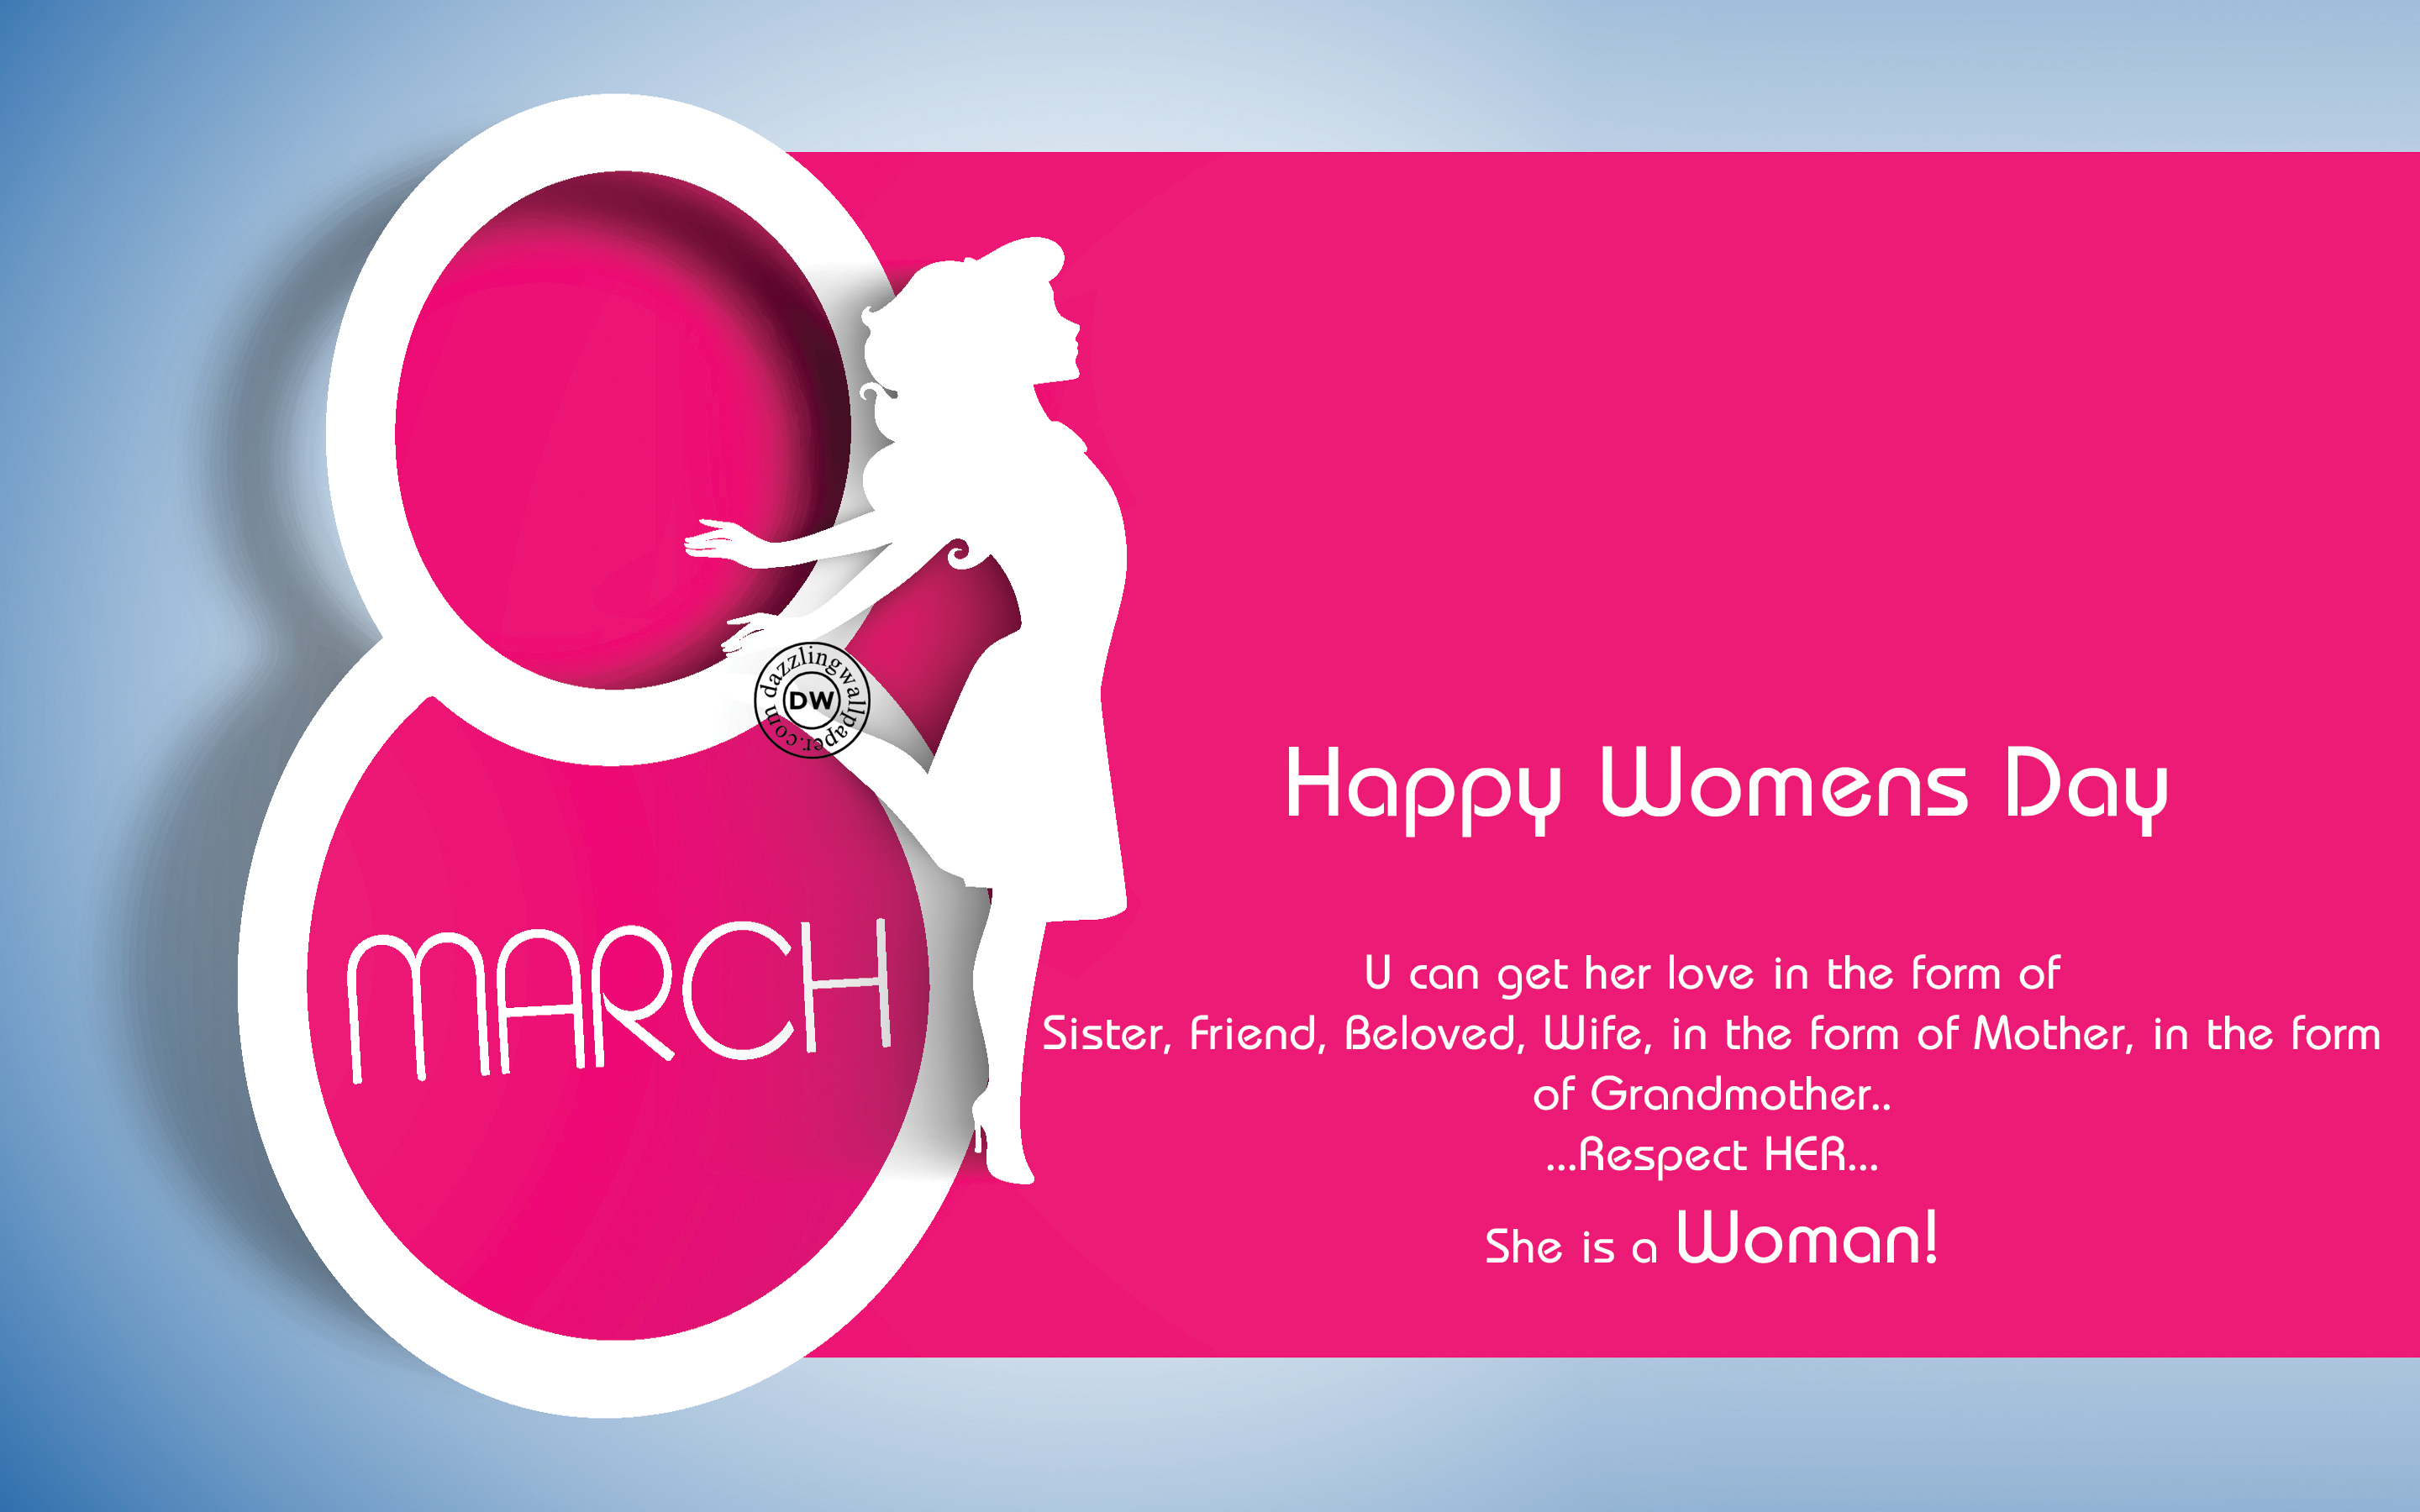 International Womans Day Wallpaper 2   2880 X 1800 stmednet 2880x1800